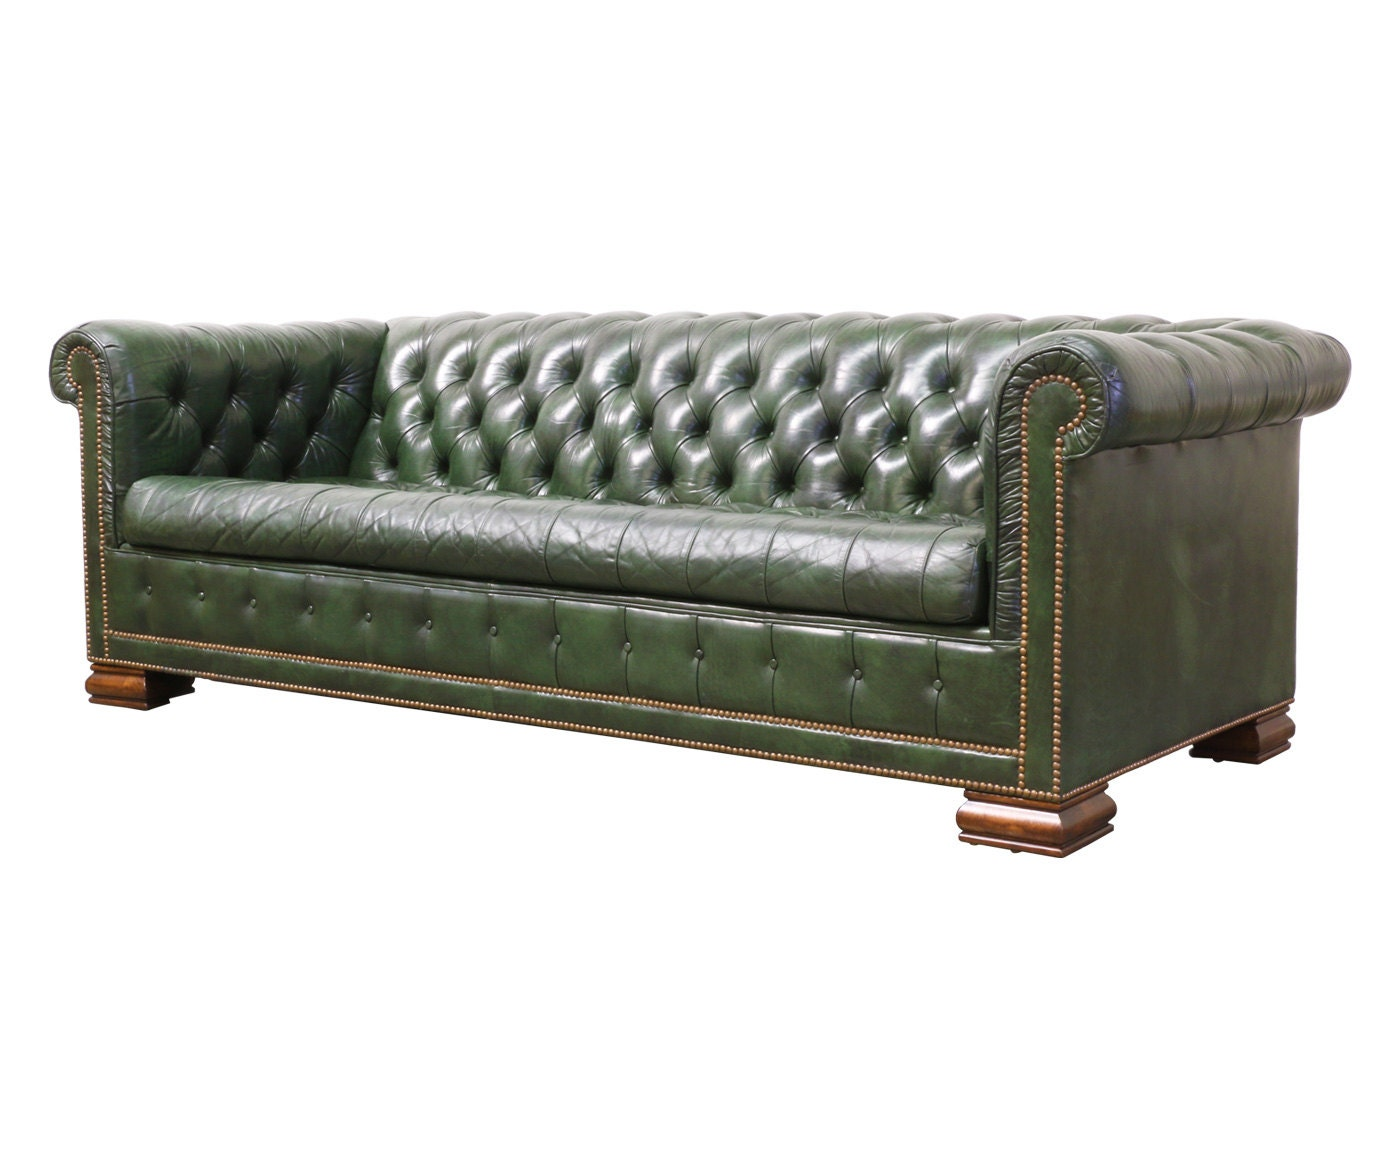 vintage green leather chesterfield sofa bed by danishmodernla